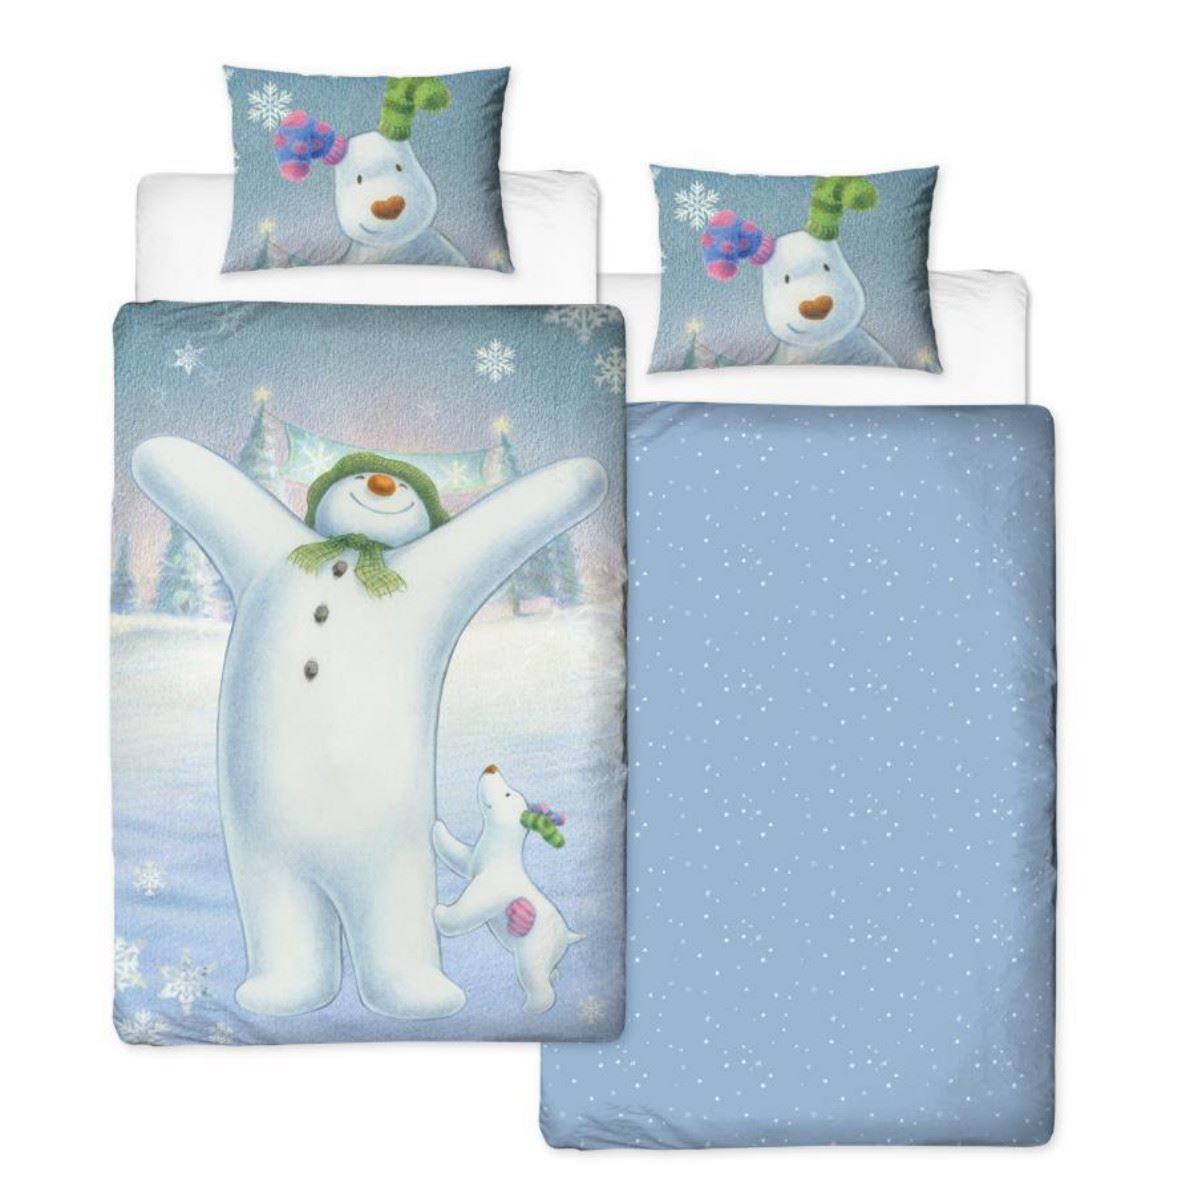 Official-The-Snowman-Duvet-Cover-Single-Double-Reversible-Bedding-Fleece-Blanket thumbnail 6